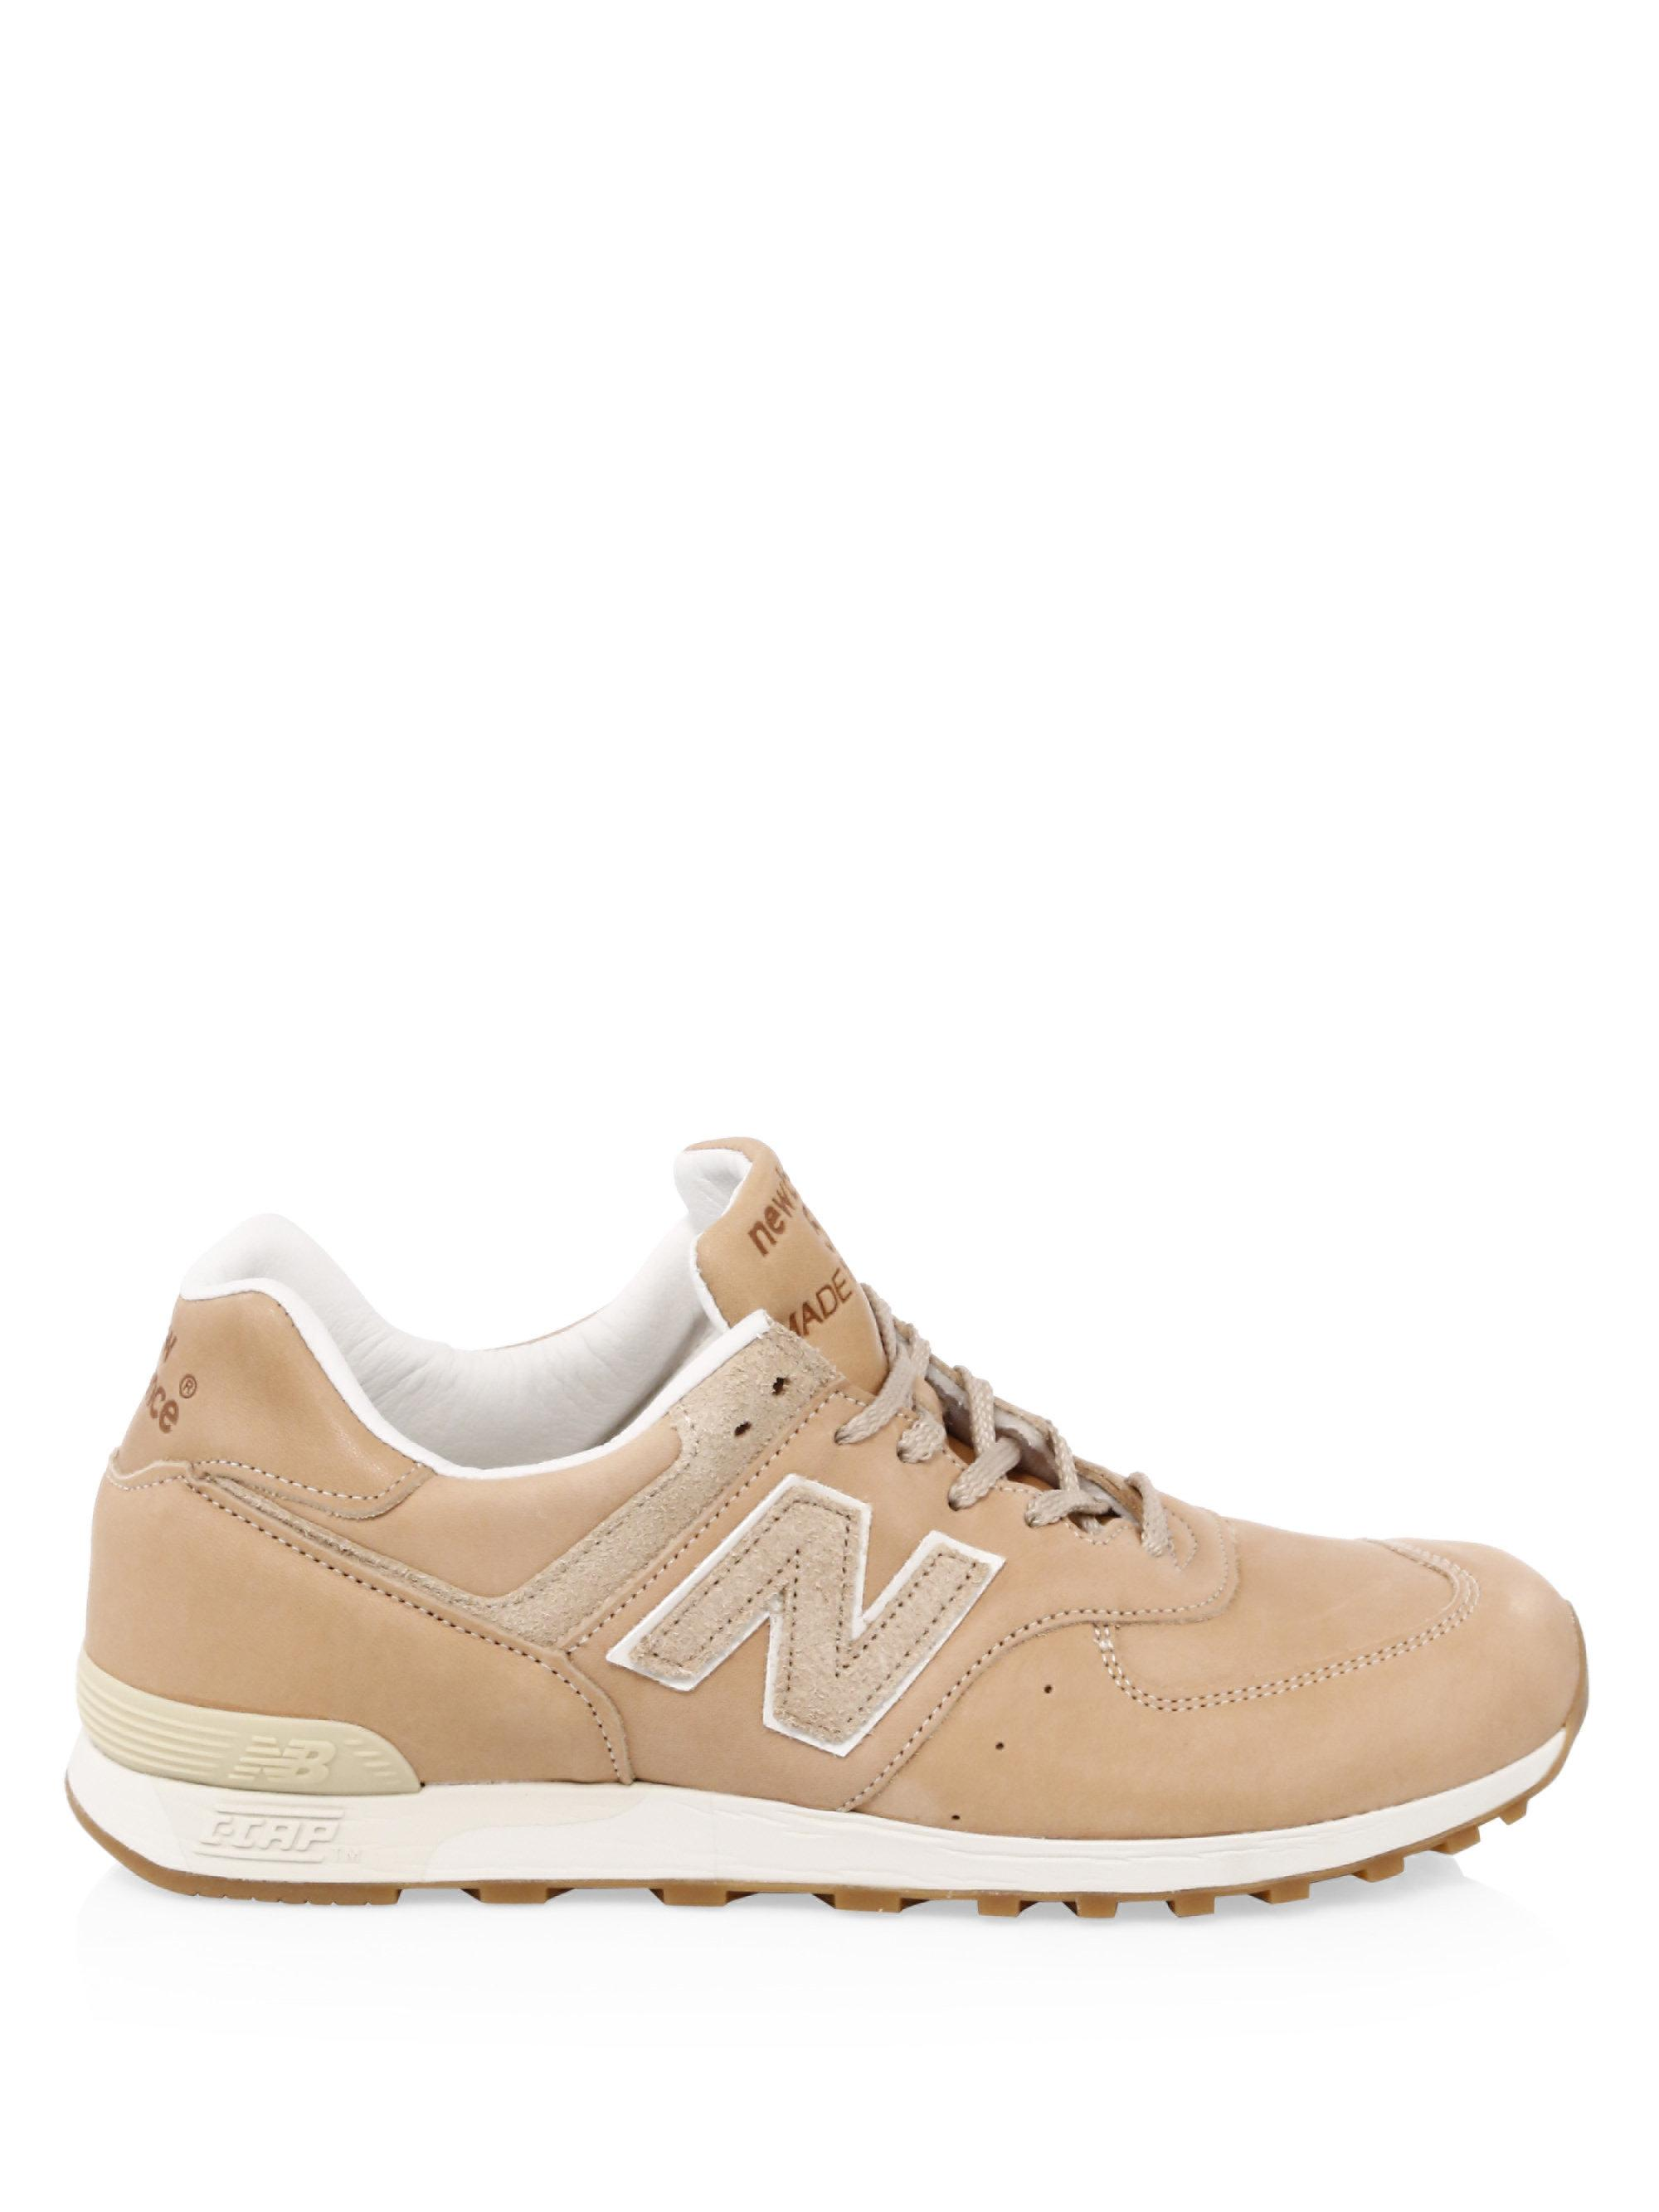 New Balance Collab Stussy Low-Top Sneakers wvCeoK